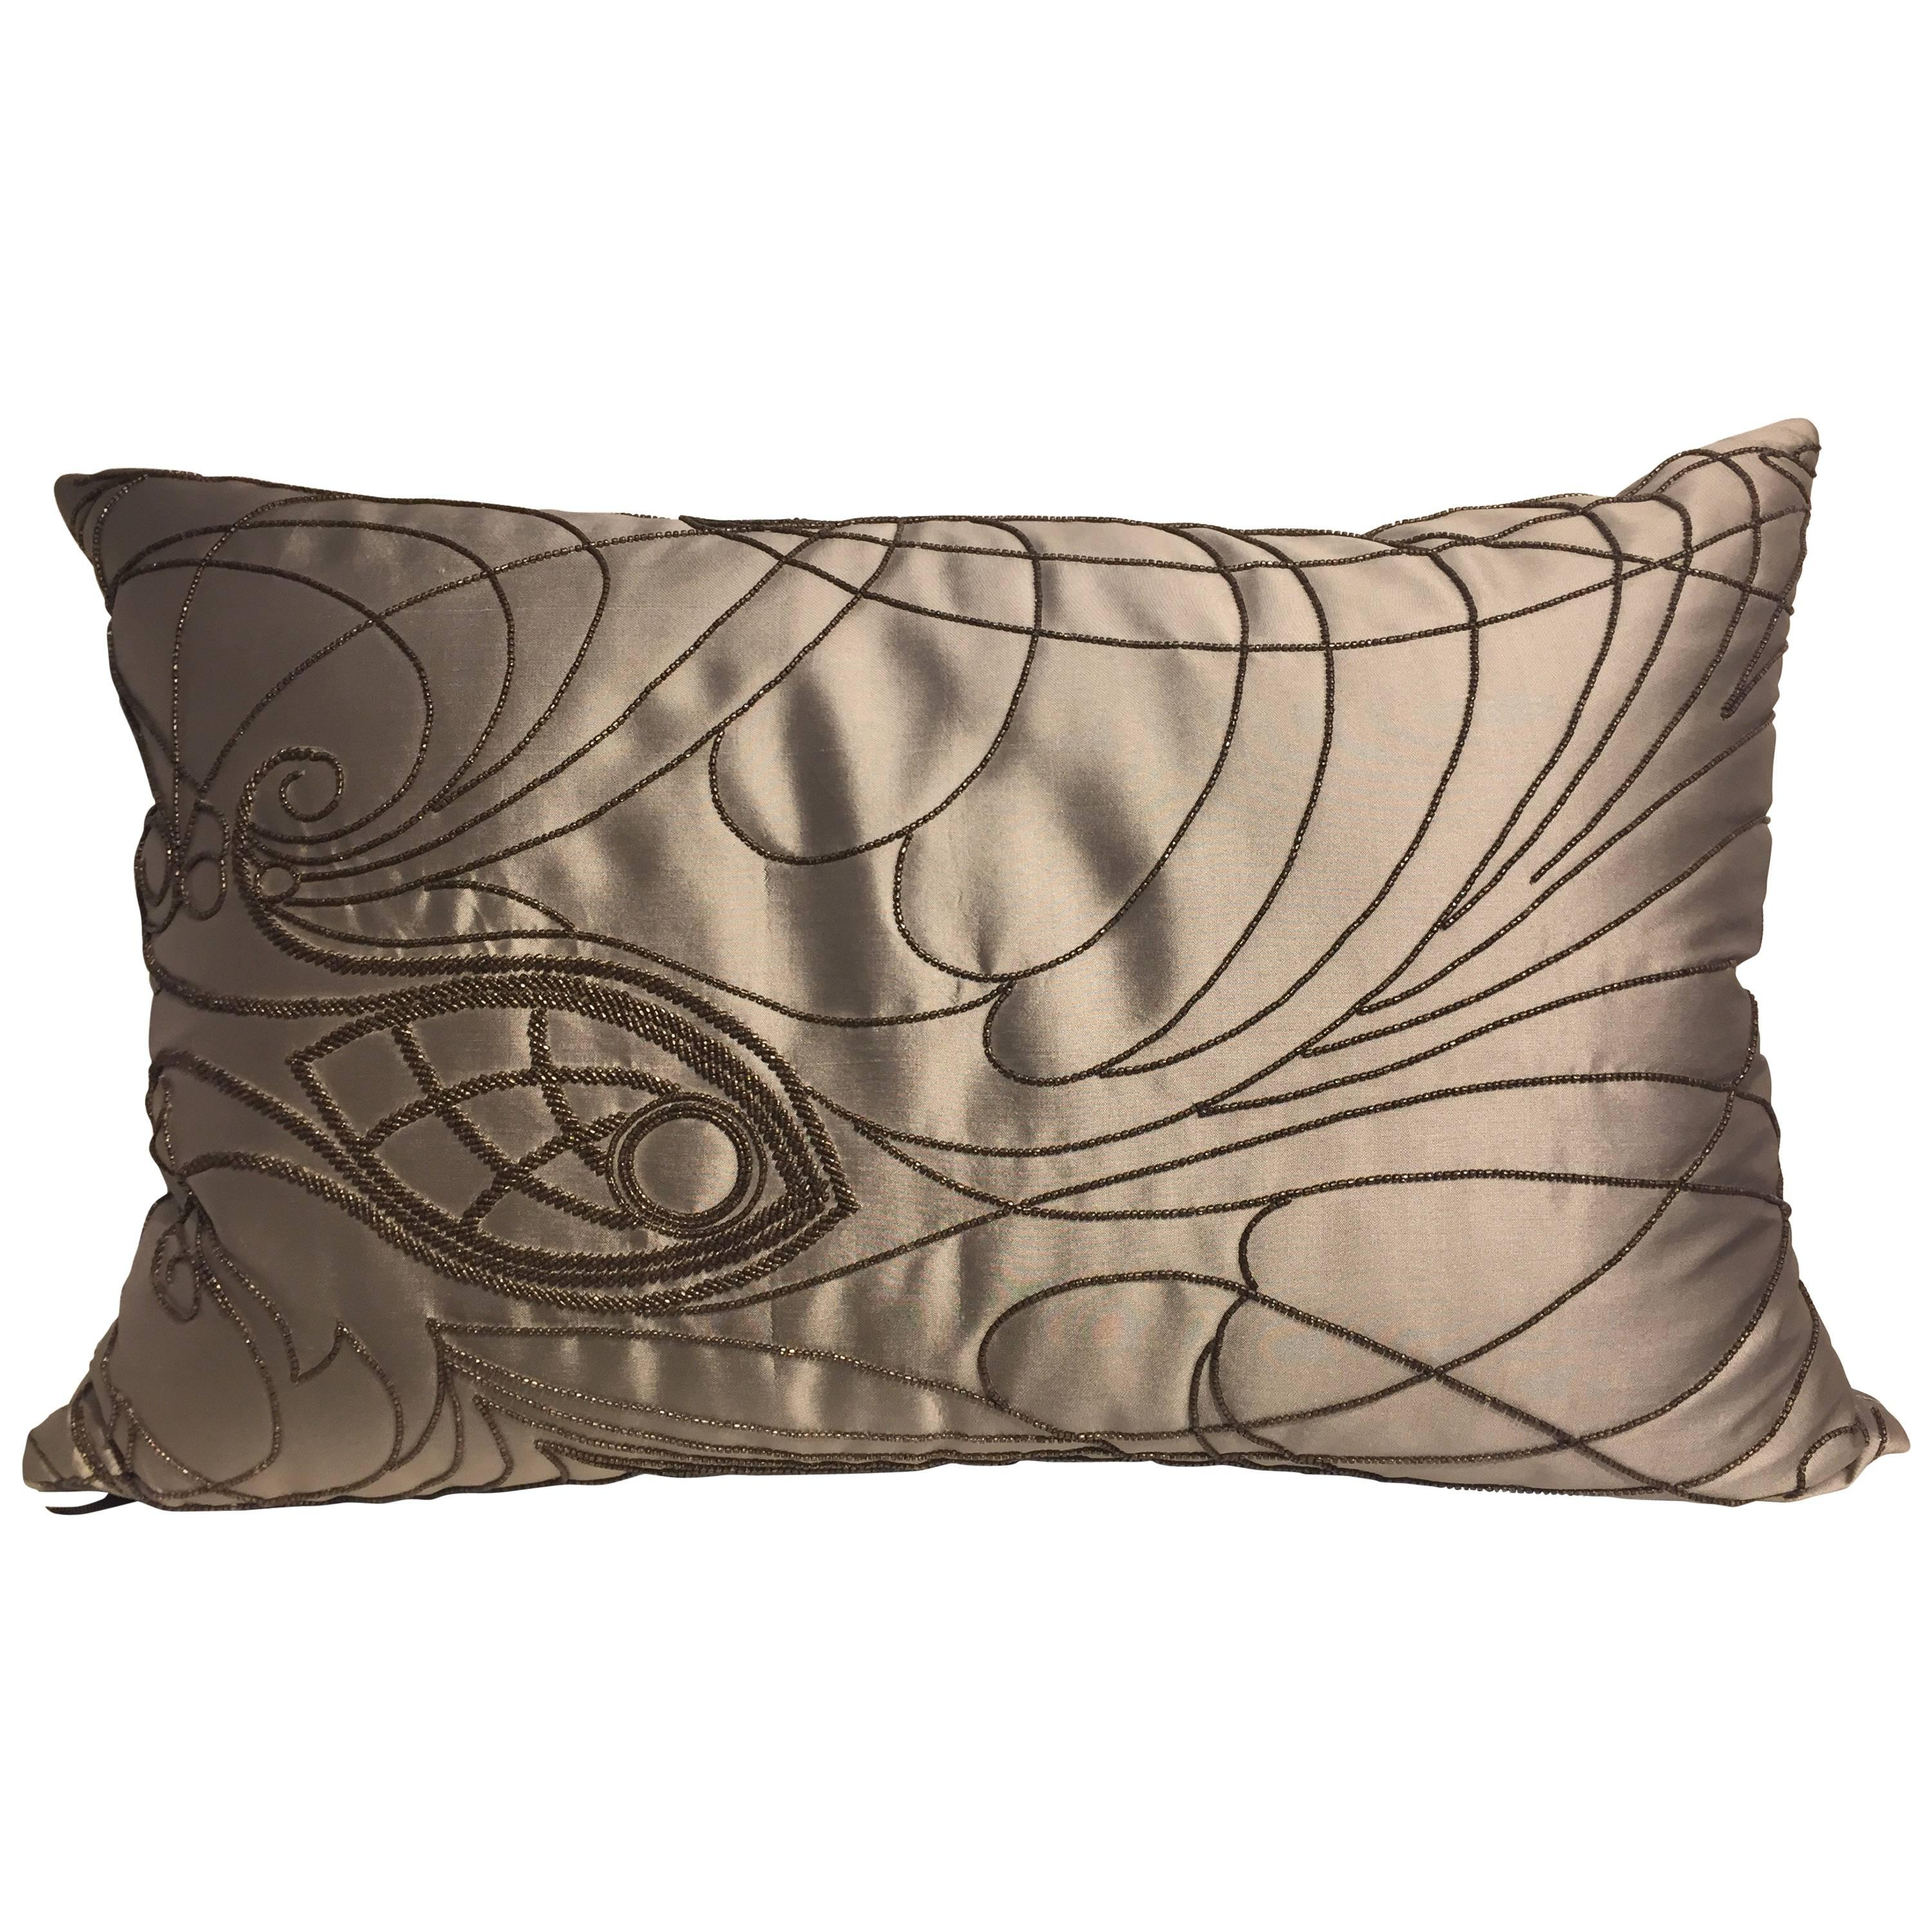 Decorative Silk Cushion With Hand Embroidery Beading Col. Silver 1